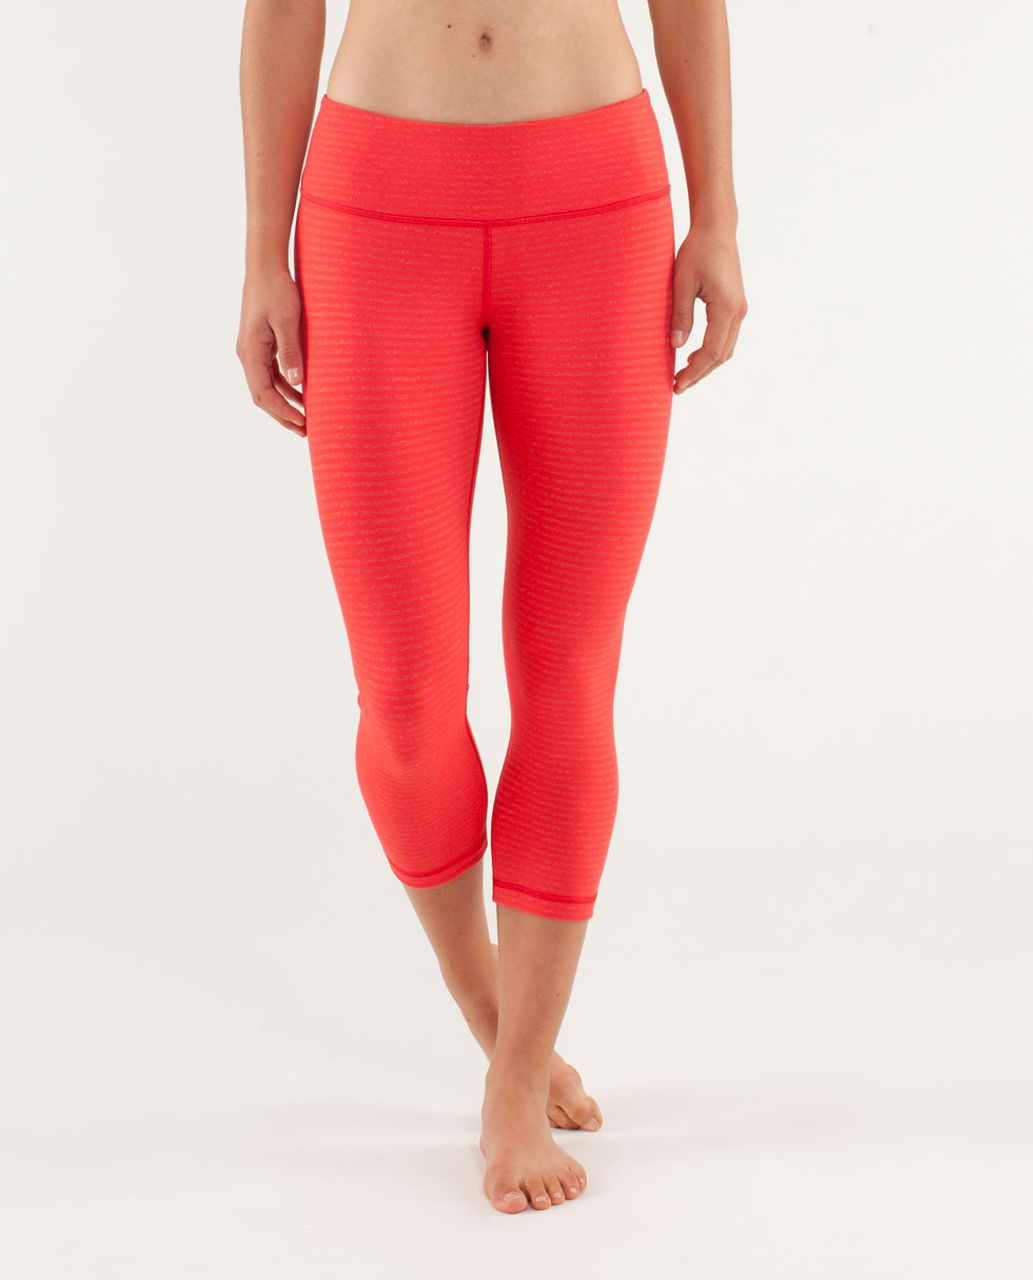 Lululemon Wunder Under Crop - Slope Stripe Love Red Heathered Fiery Red / Fiery Red / Love Red